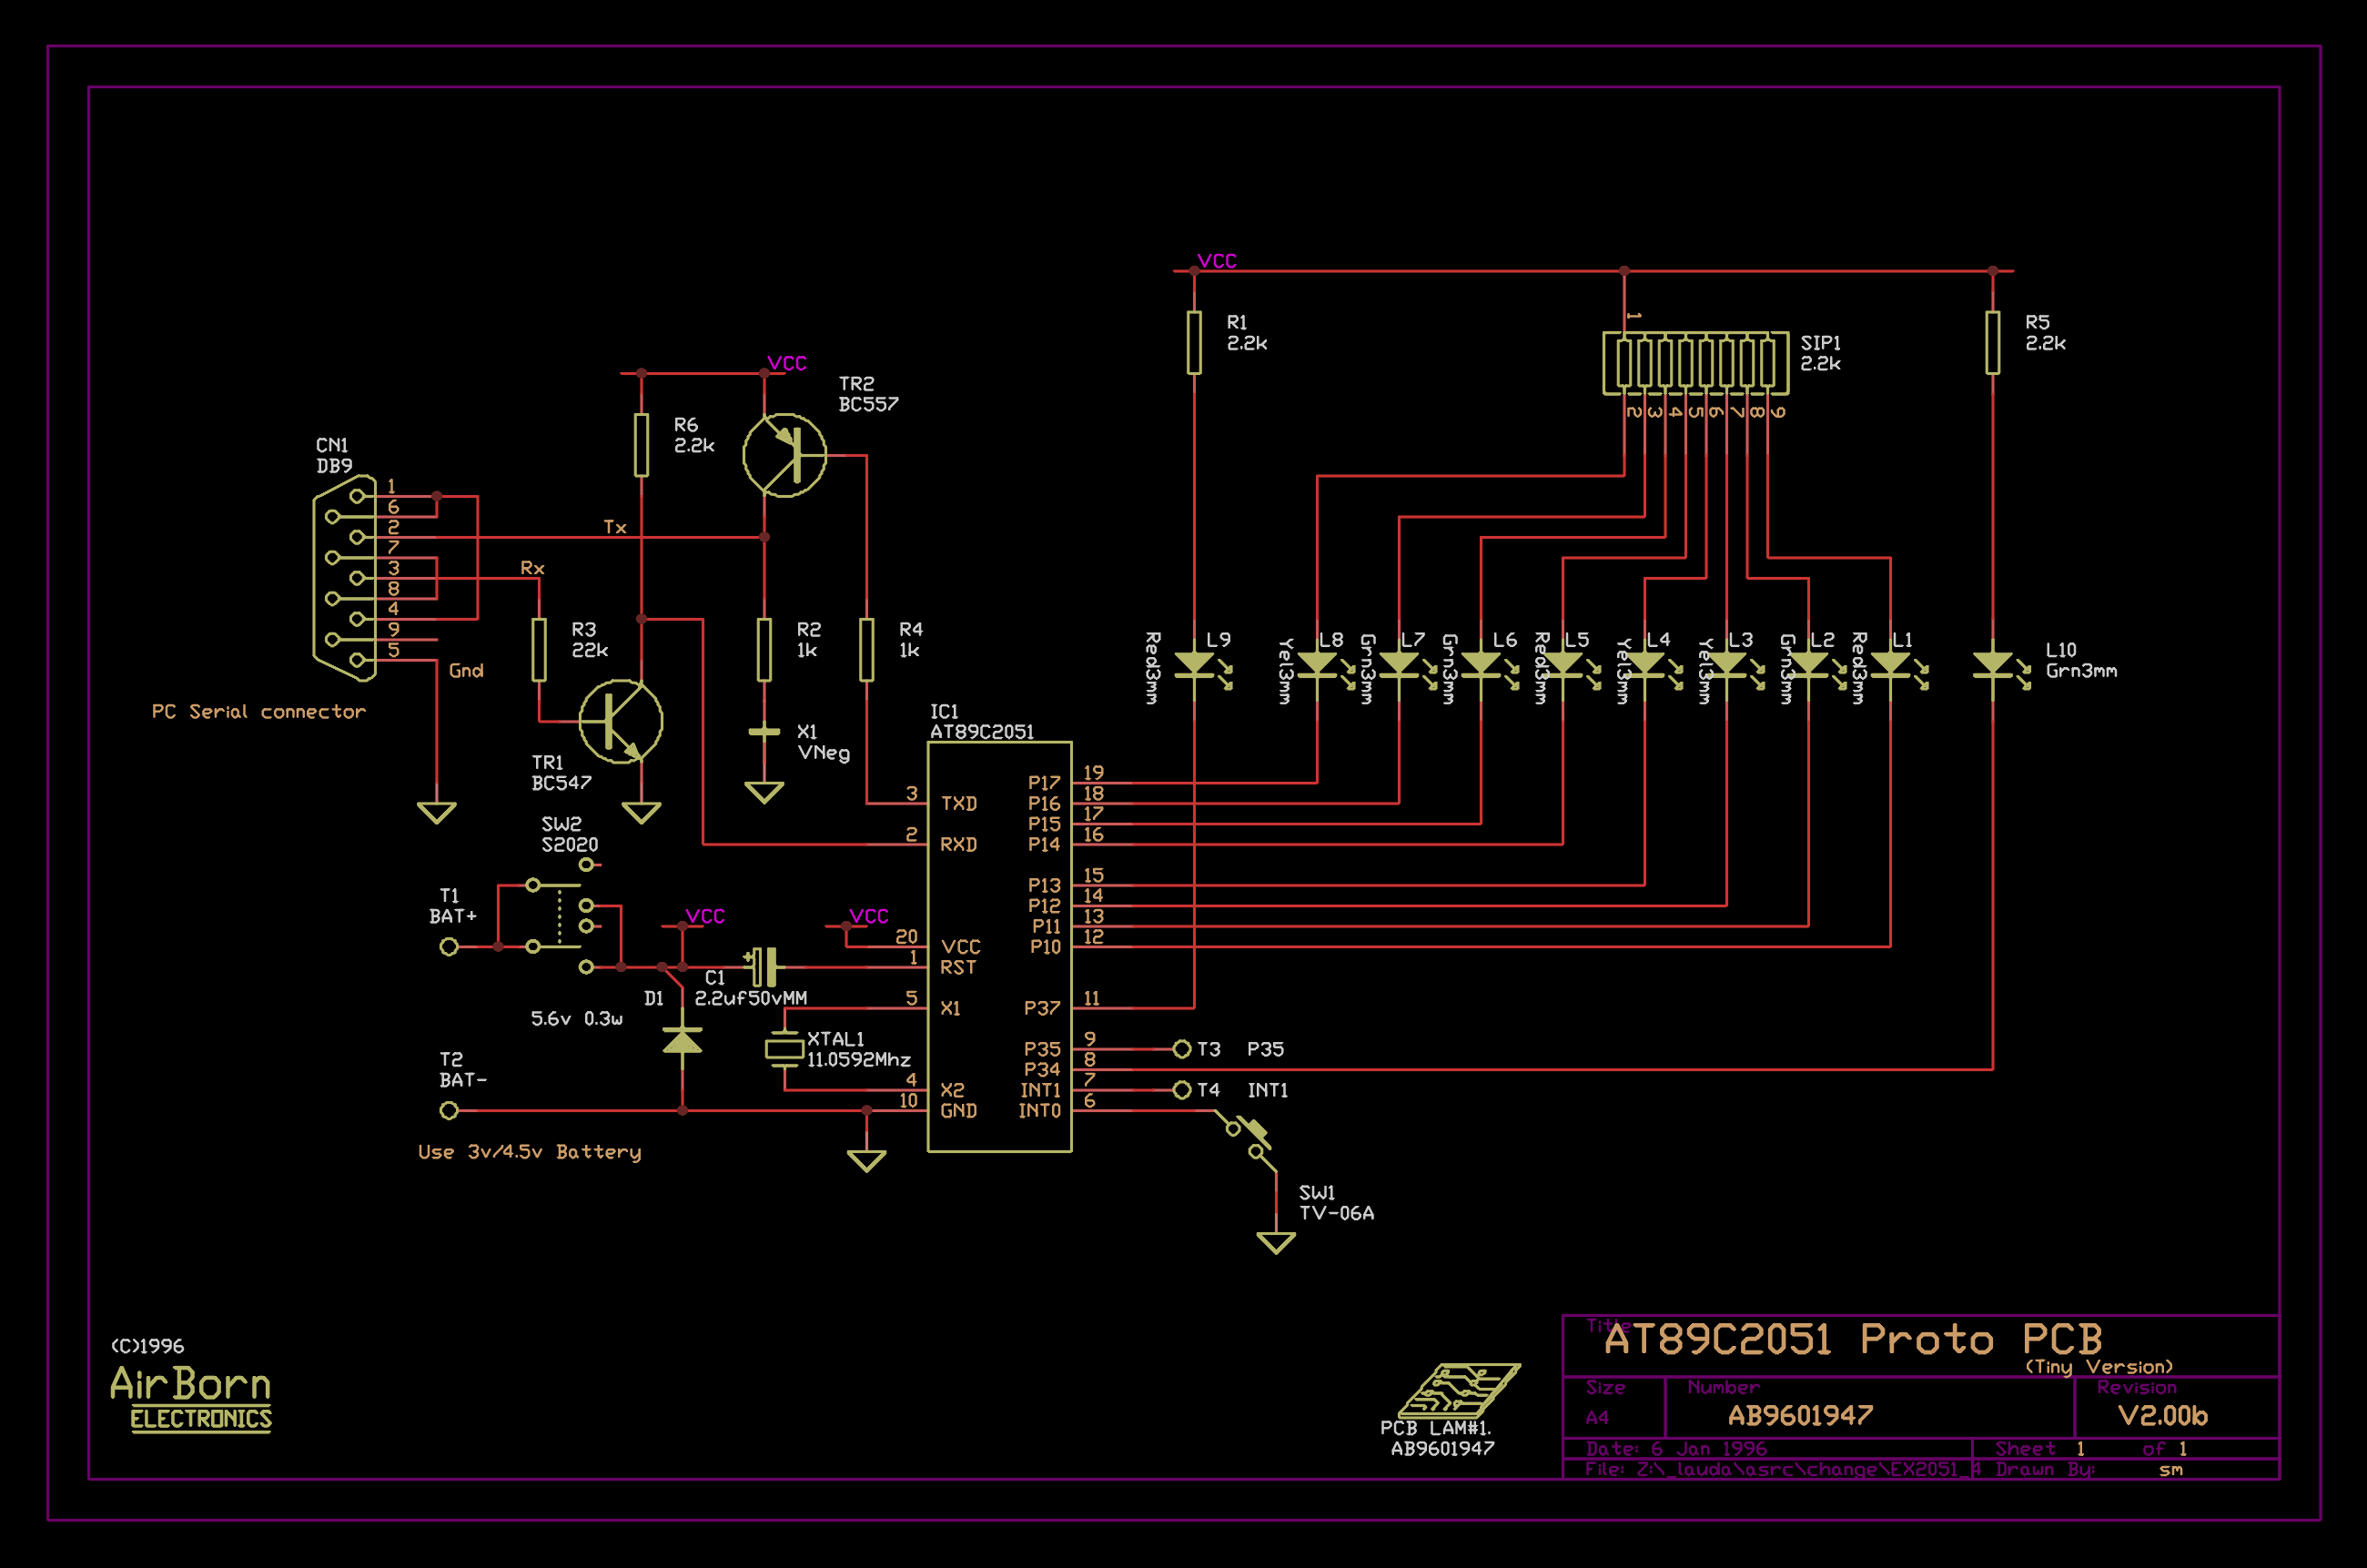 Circuit Design Collection Airborn Electronics Electronic With Pcb Layout Diagram Parts List